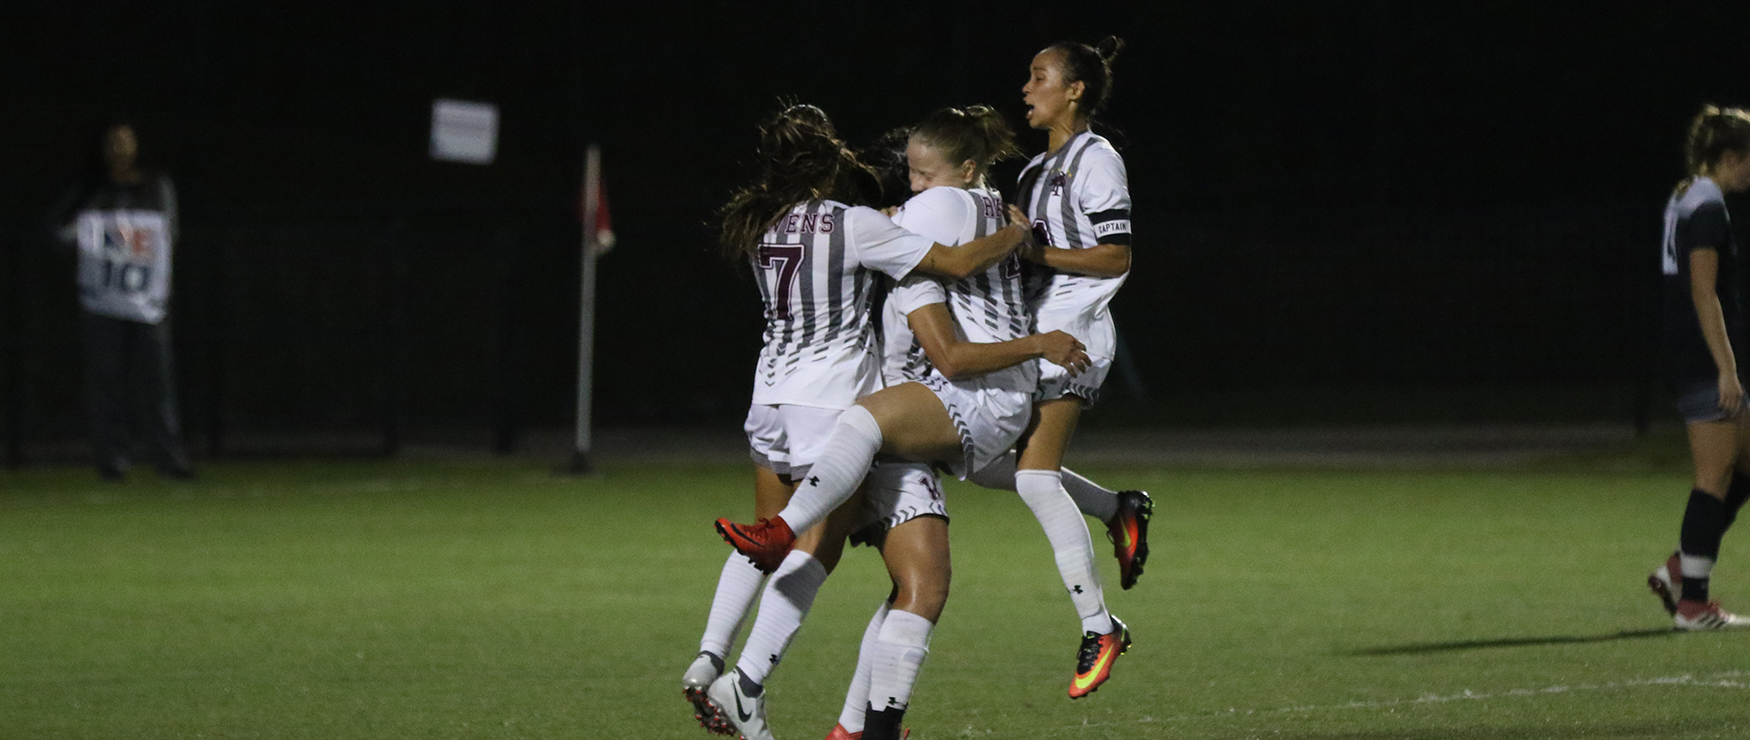 Furious Second Half Rallies No. 15 Women's Soccer to 2-2 (2 OT) Tie with Saint Rose